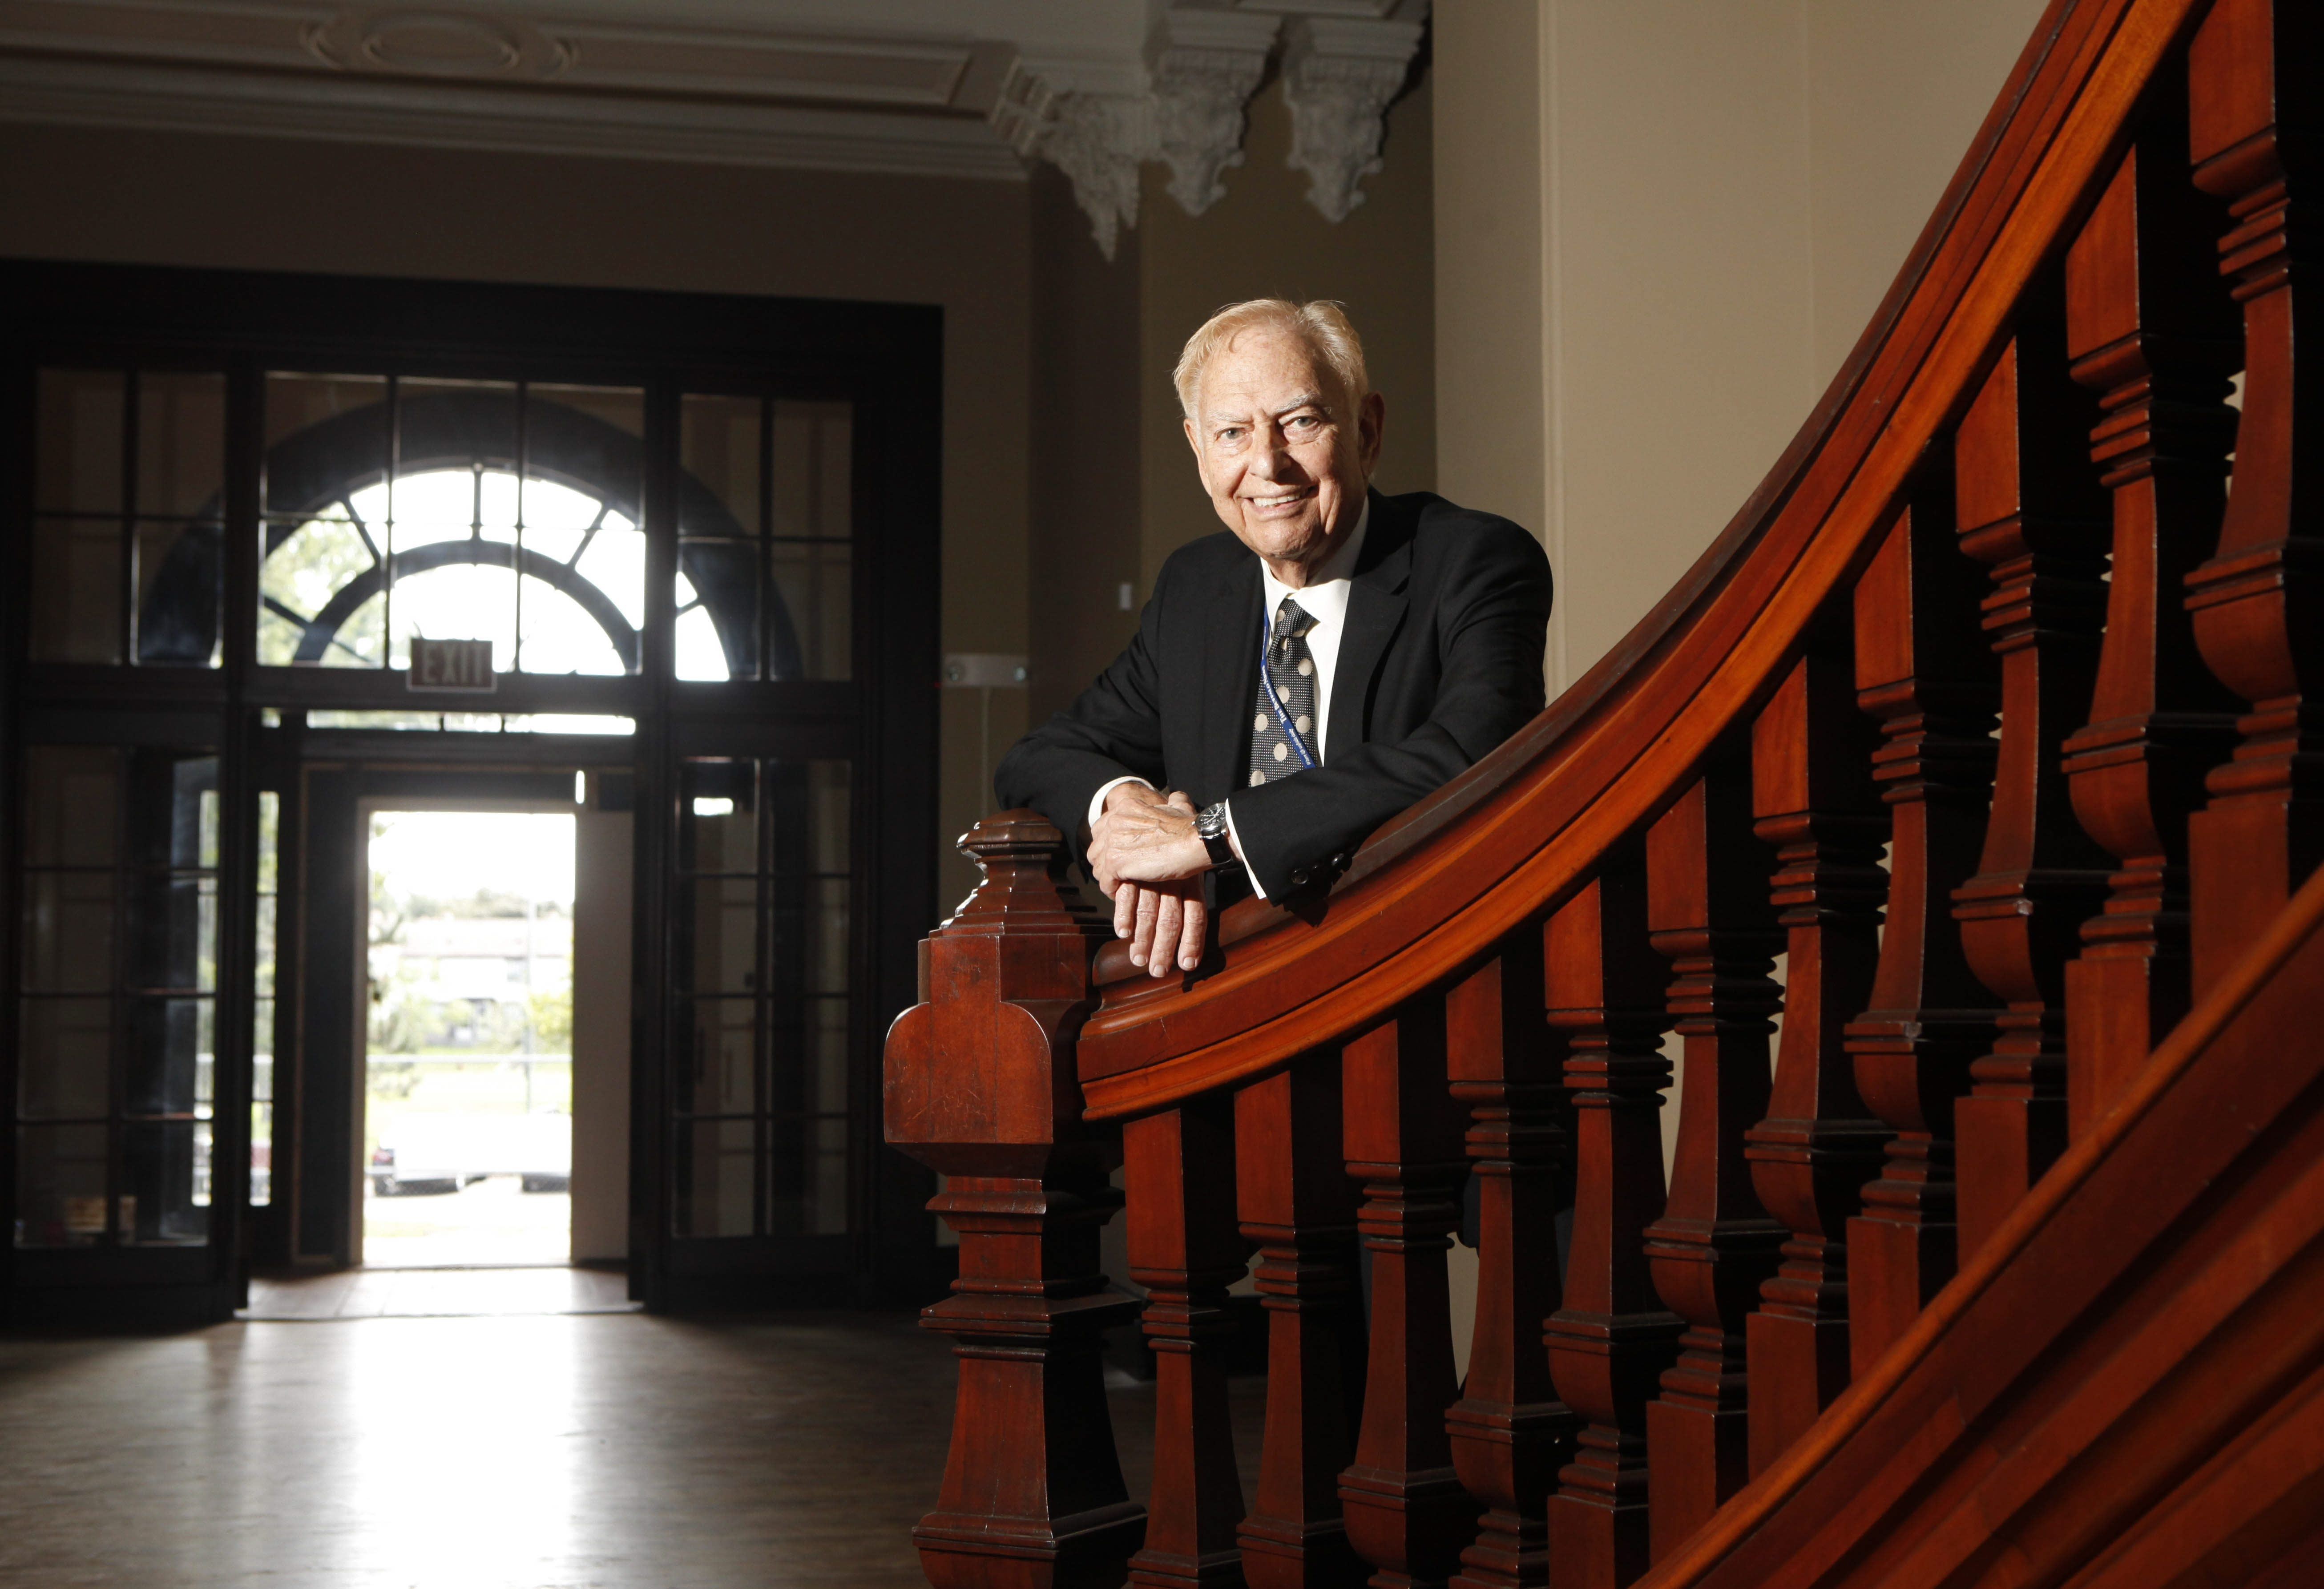 Buffalo News publisher emeritus Stanford Lipsey is chairman of the Richardson Center Corp., and a passionate community advocate.